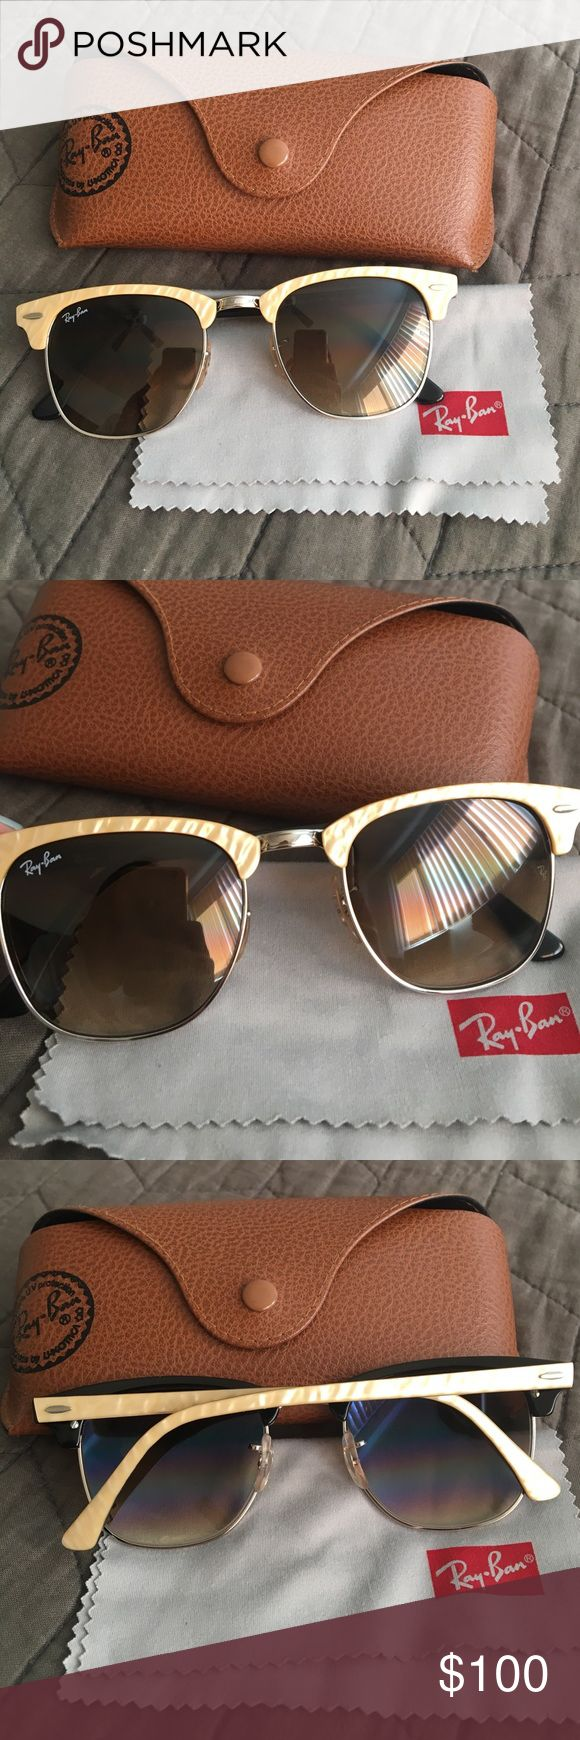 3016 w0366  1000+ ideas about Ray Ban Clubmaster Sunglasses on Pinterest